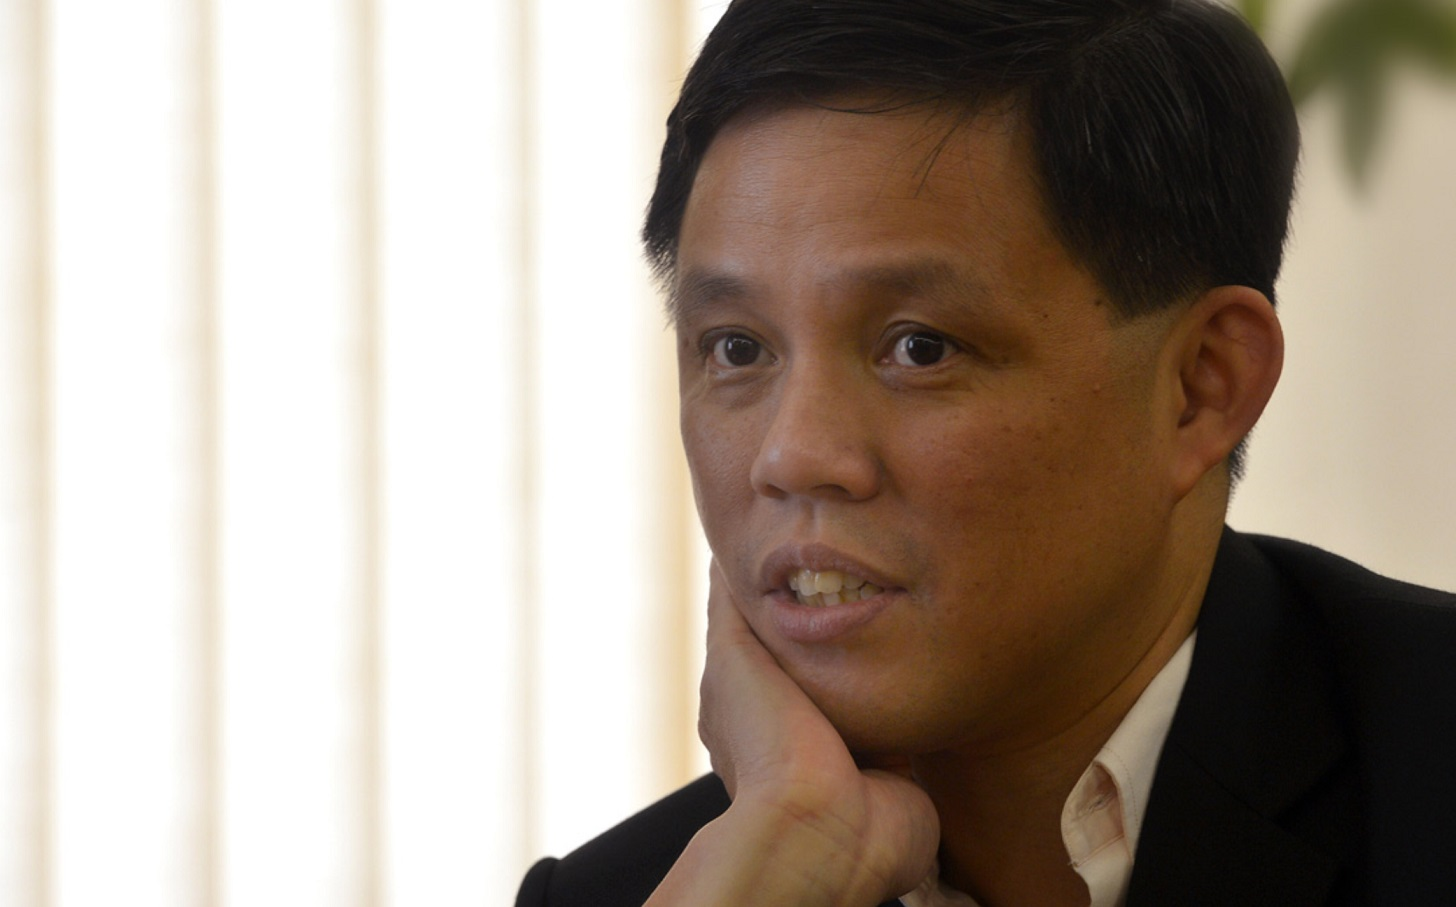 Singapore, social compact, inequality, Chan Chun Sing, PAP, elitism